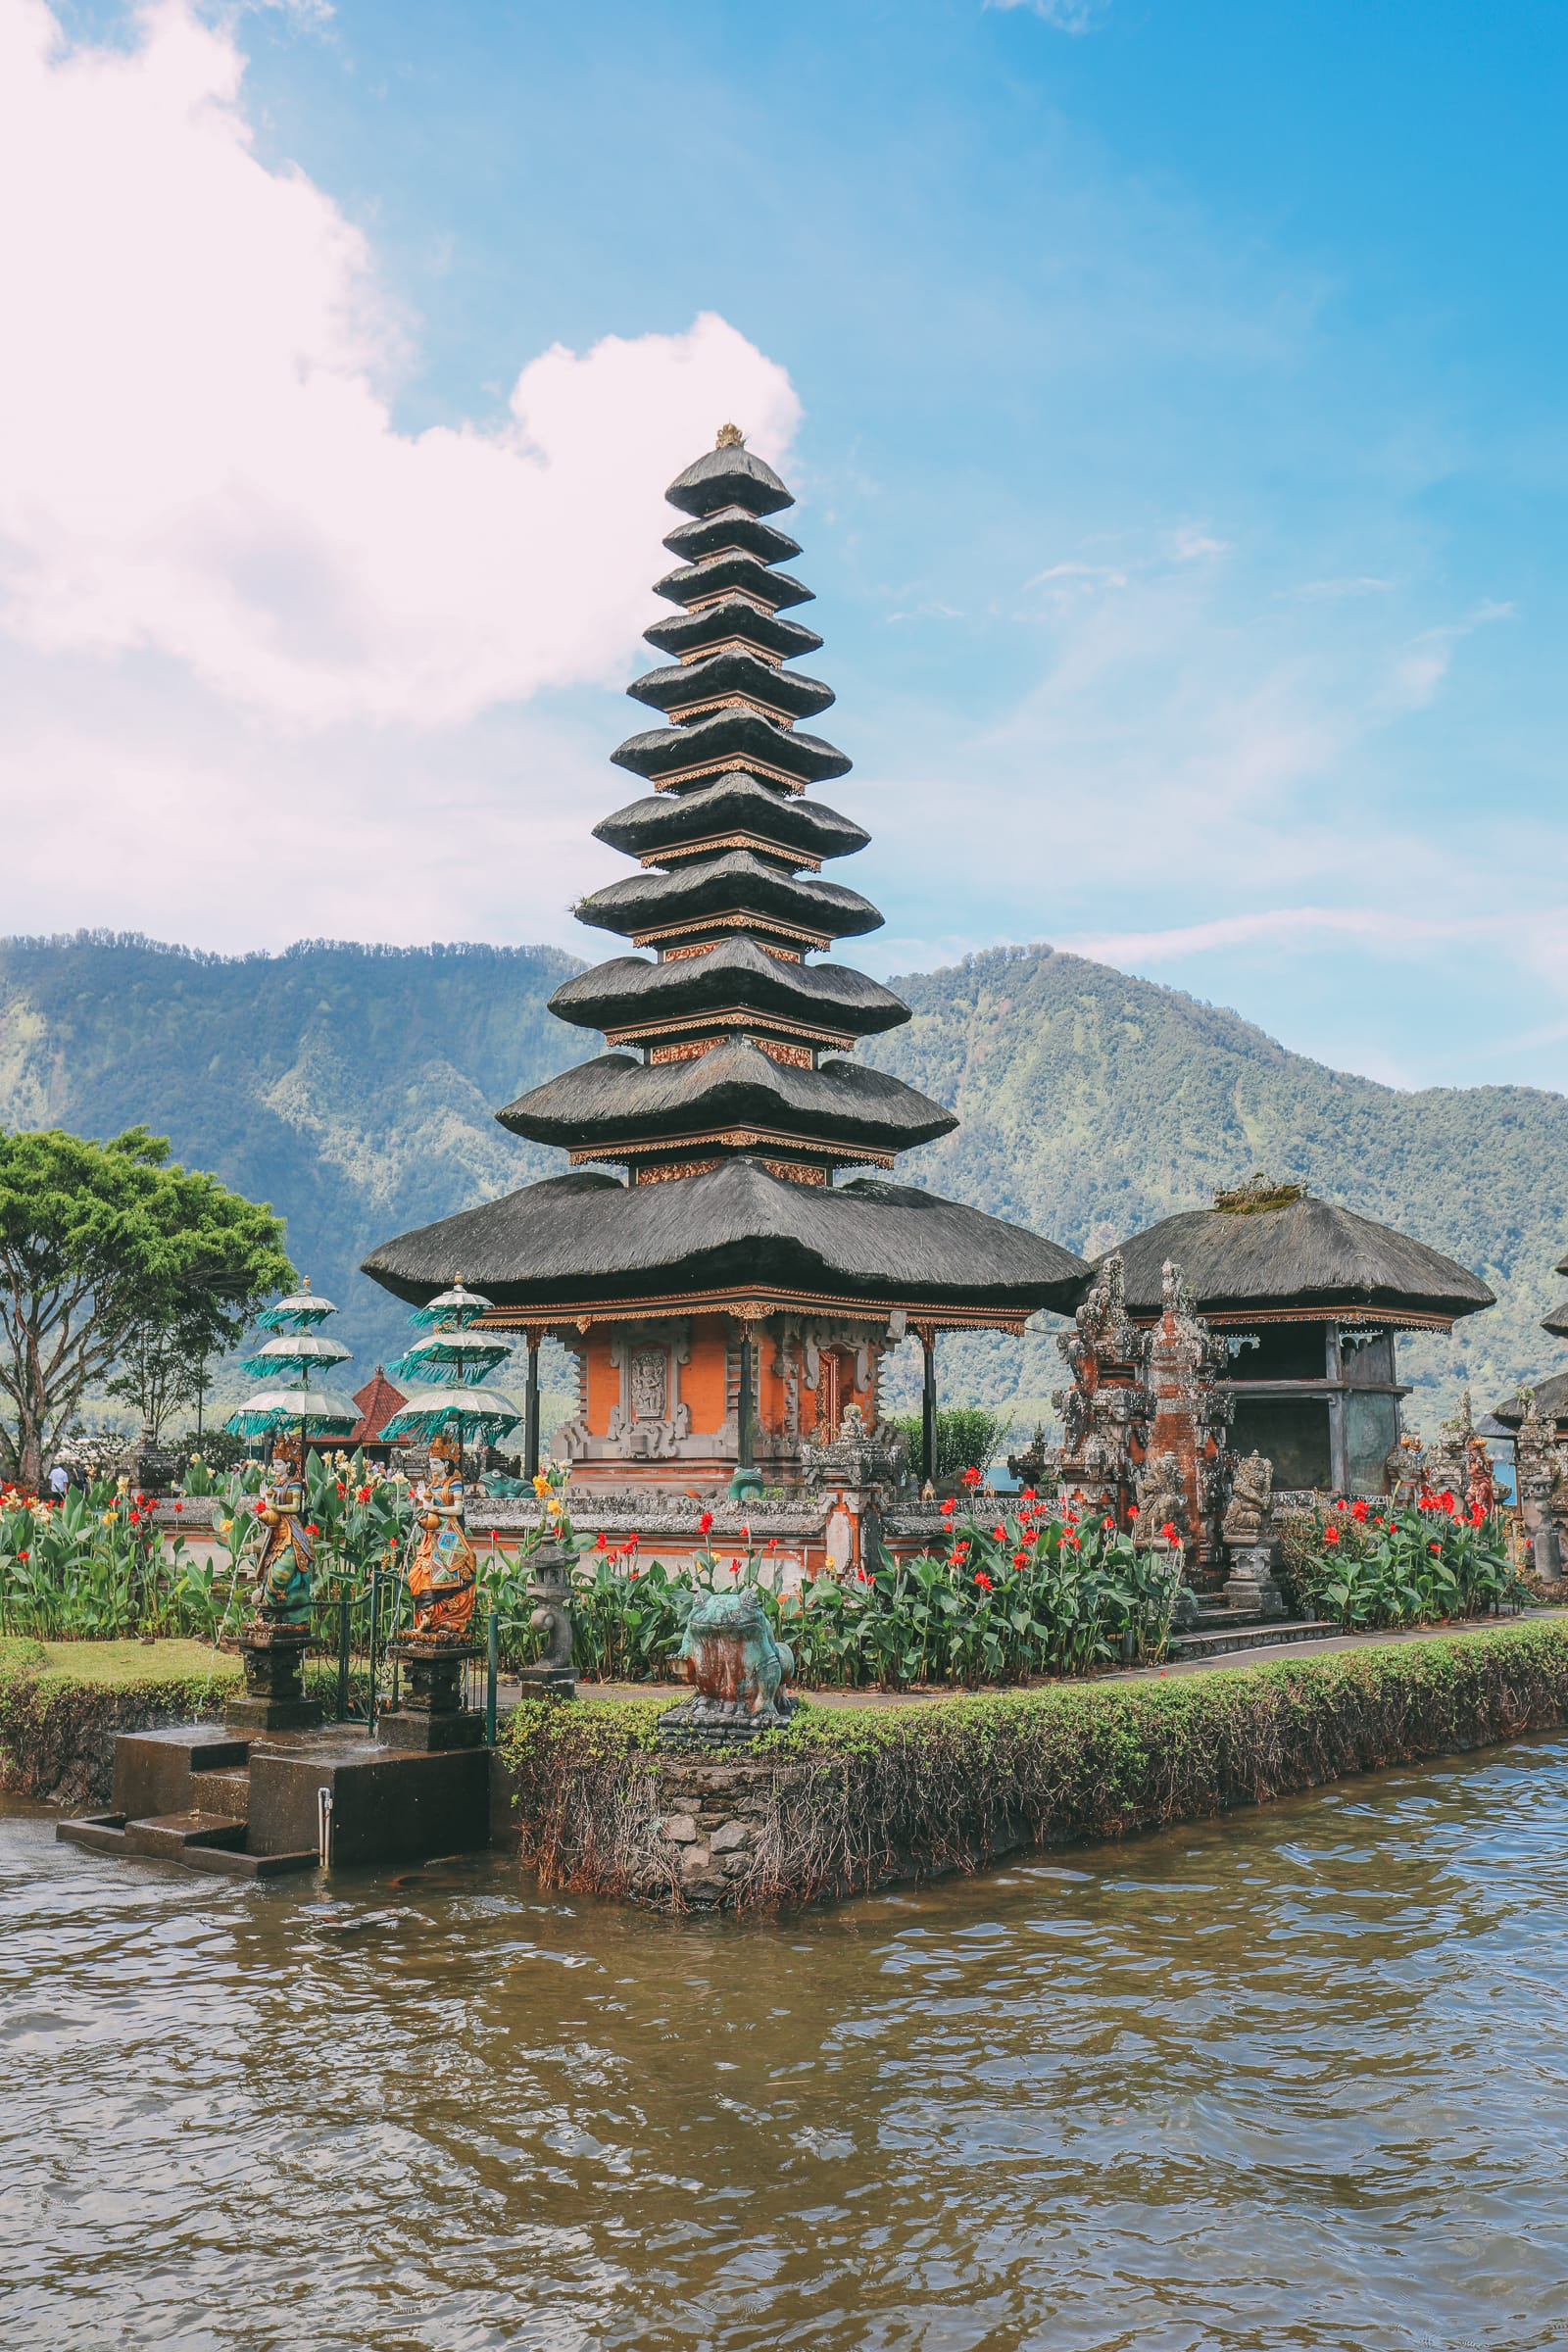 Bali Travel - The Beautiful Nungnung Waterfall And Ulun Danu Bratan Temple (31)